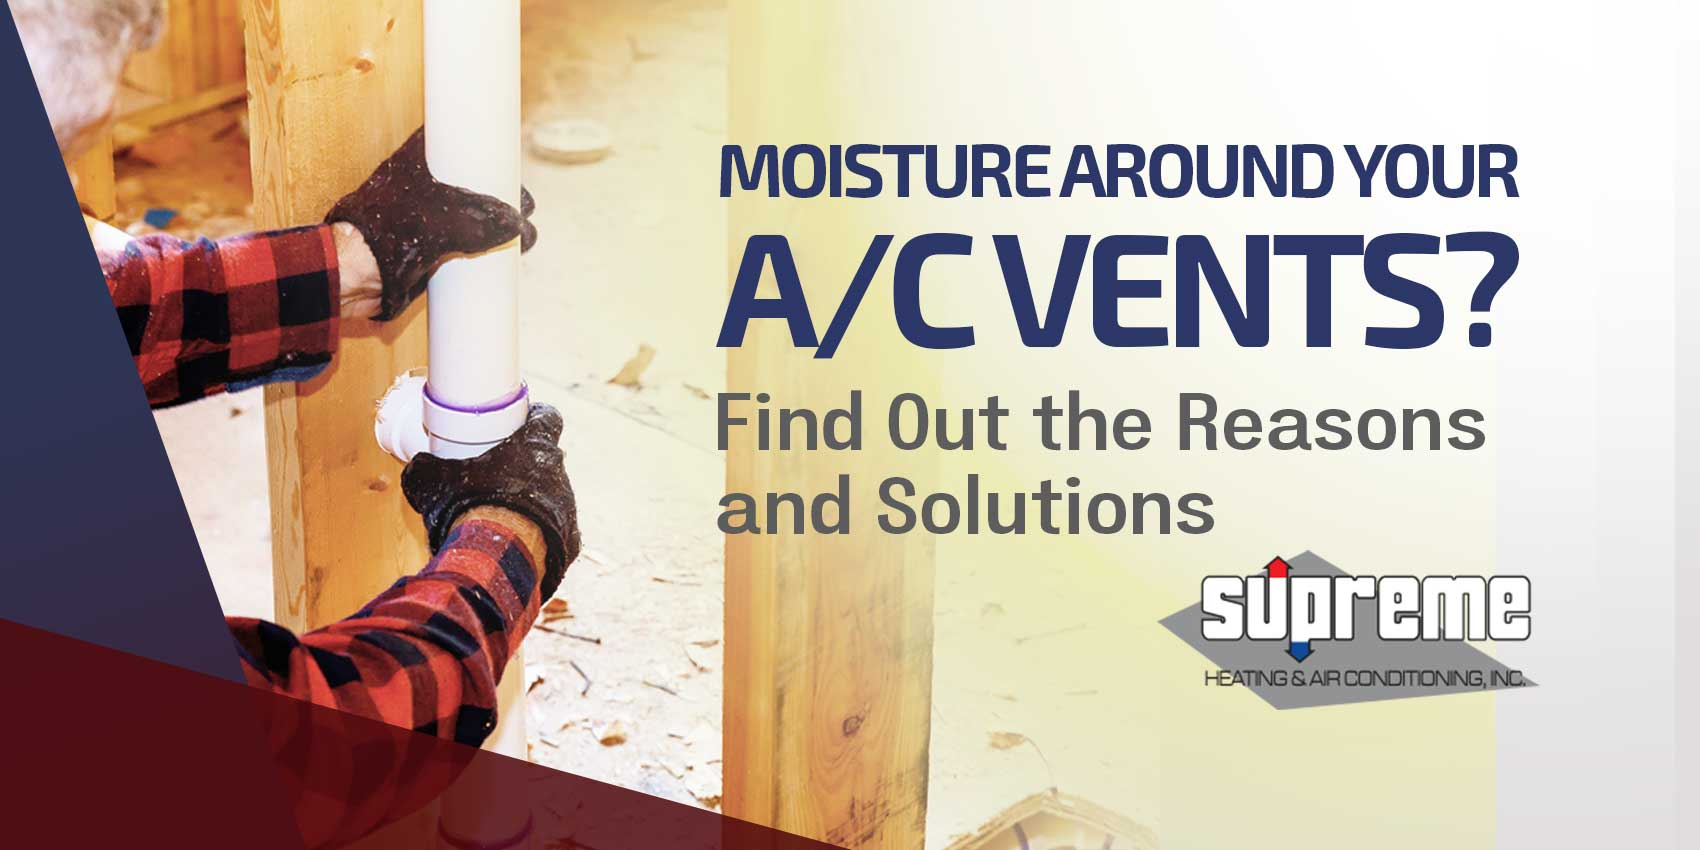 Moisture Around Your A/C Vents? Find Out the Reasons and Solutions